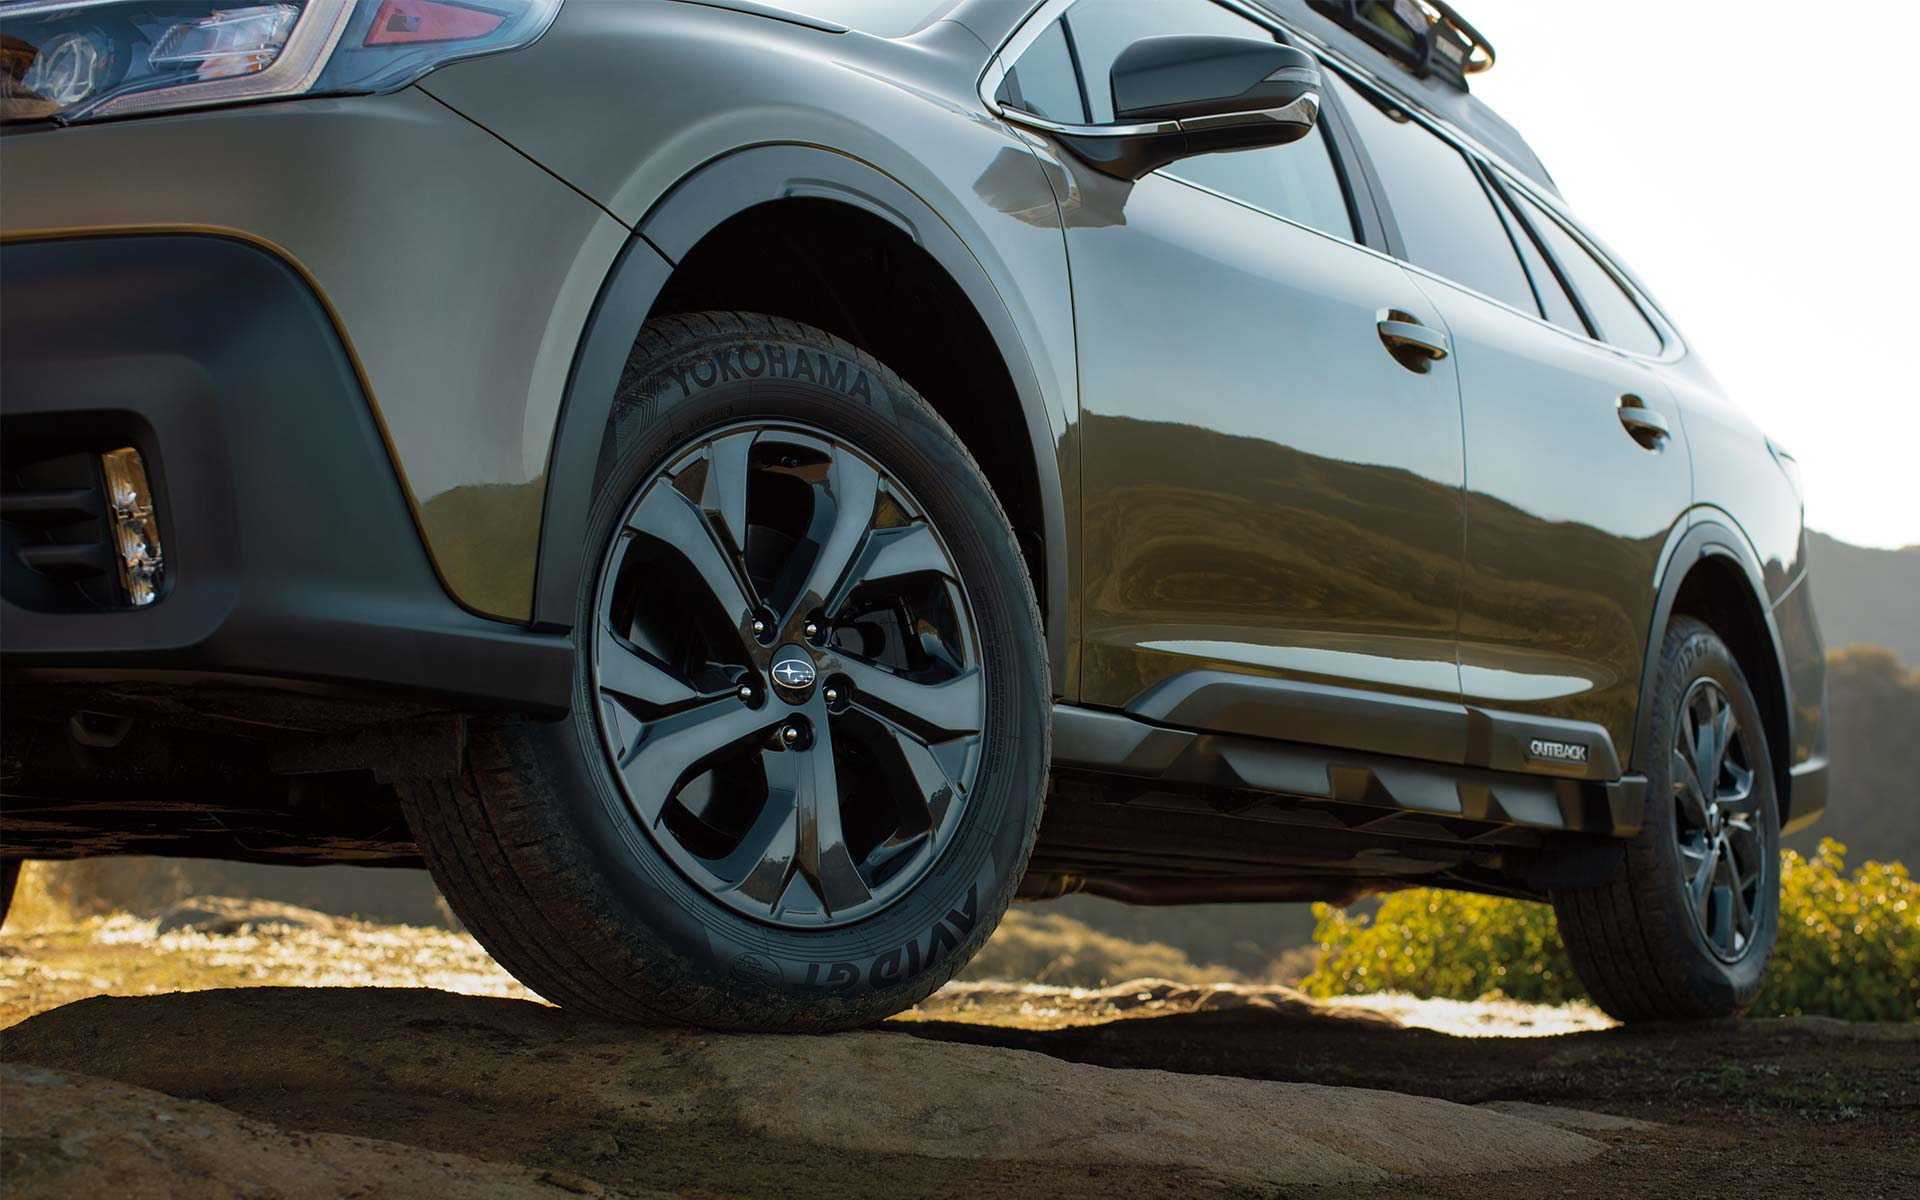 A close-up of the standard 18-inch alloy wheels on the 2022 Subaru Onyx Edition XT.